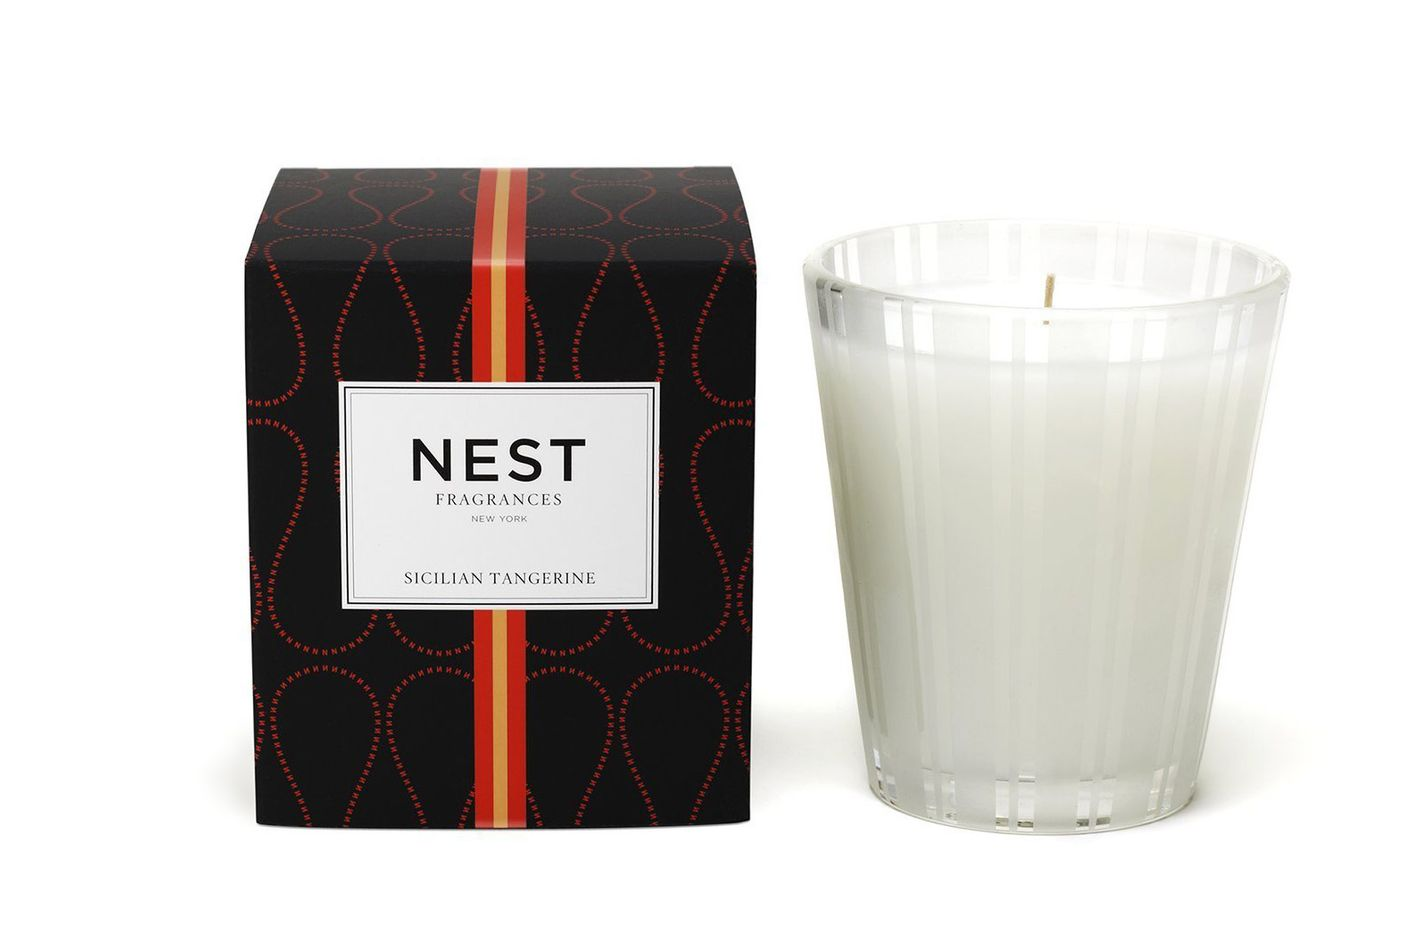 Nest Fragrances Classic Candle, Sicilian Tangerine